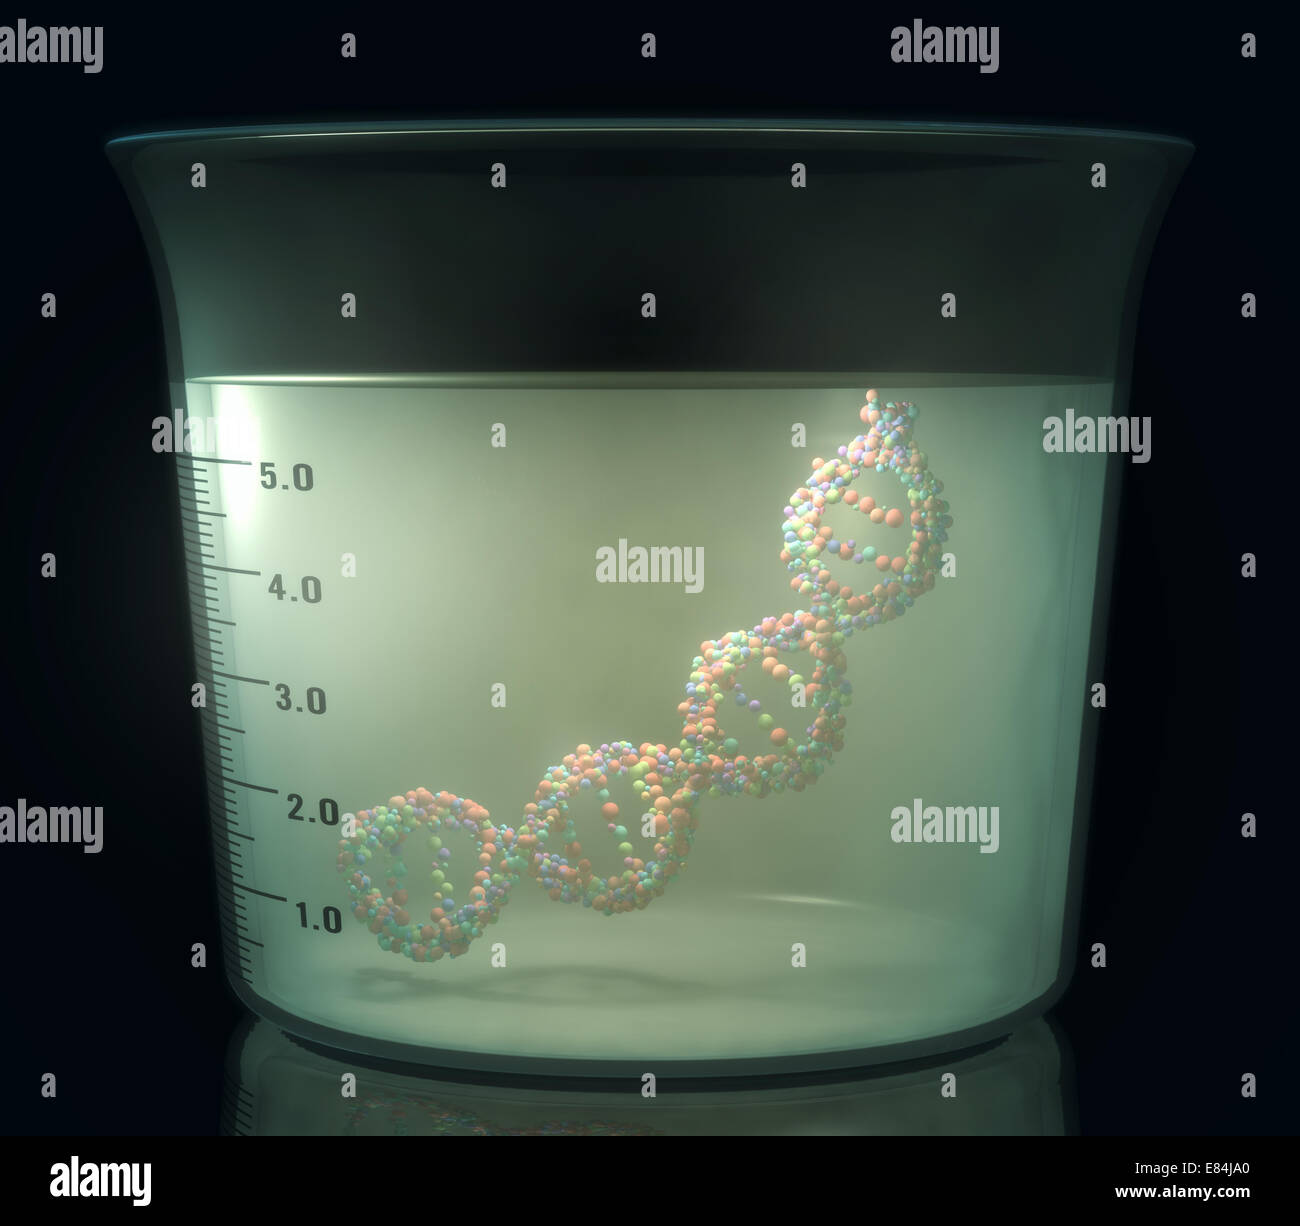 Test tube with dna inside. Concept of manipulation of the genetic code. Clipping path included. - Stock Image